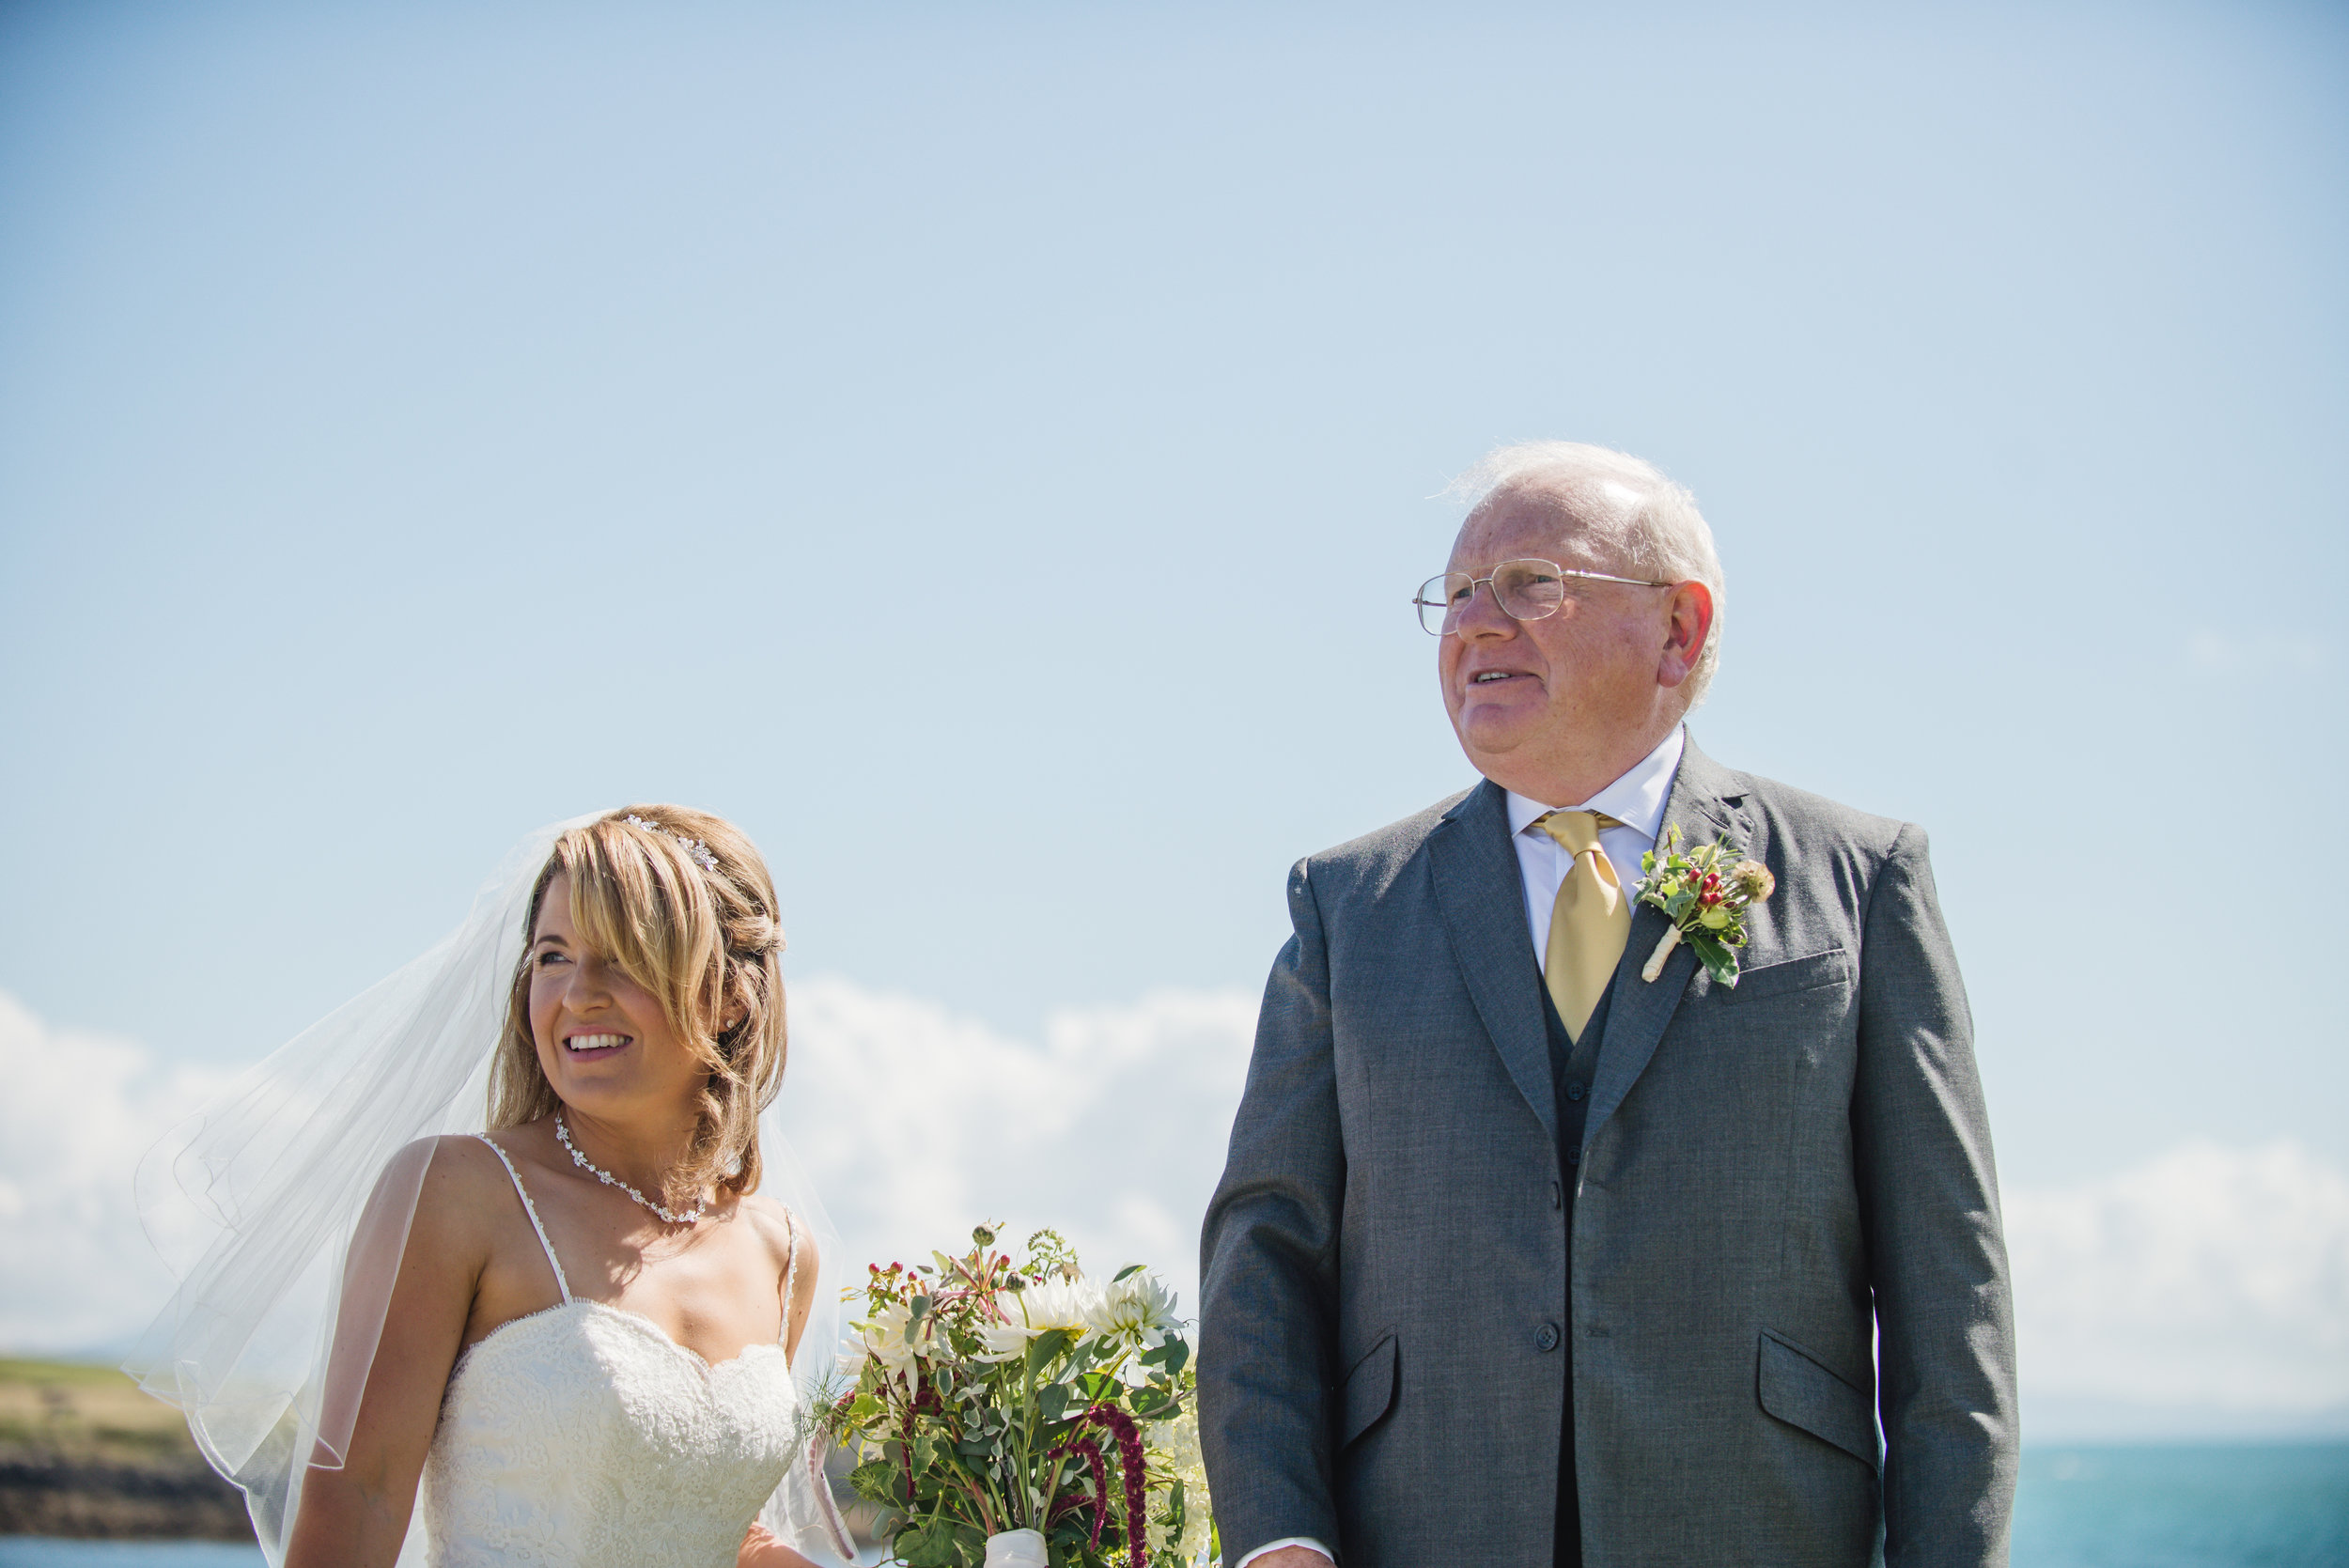 Wales Wedding Photography, Meridian Photography, Northern Michigan Wedding Photographers